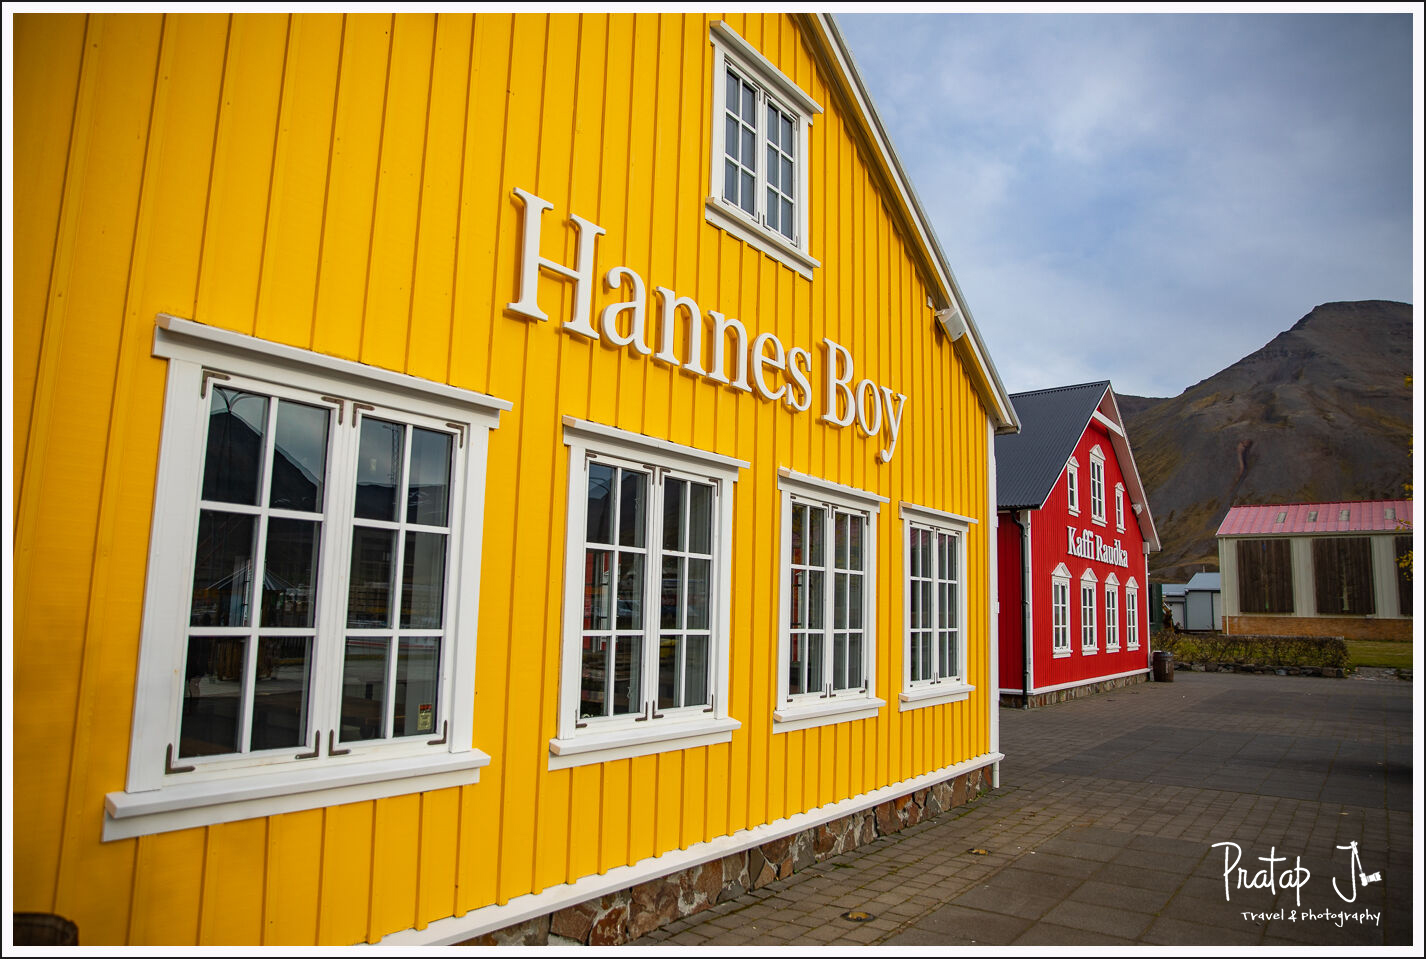 Bright yellow and red buildings in Iceland